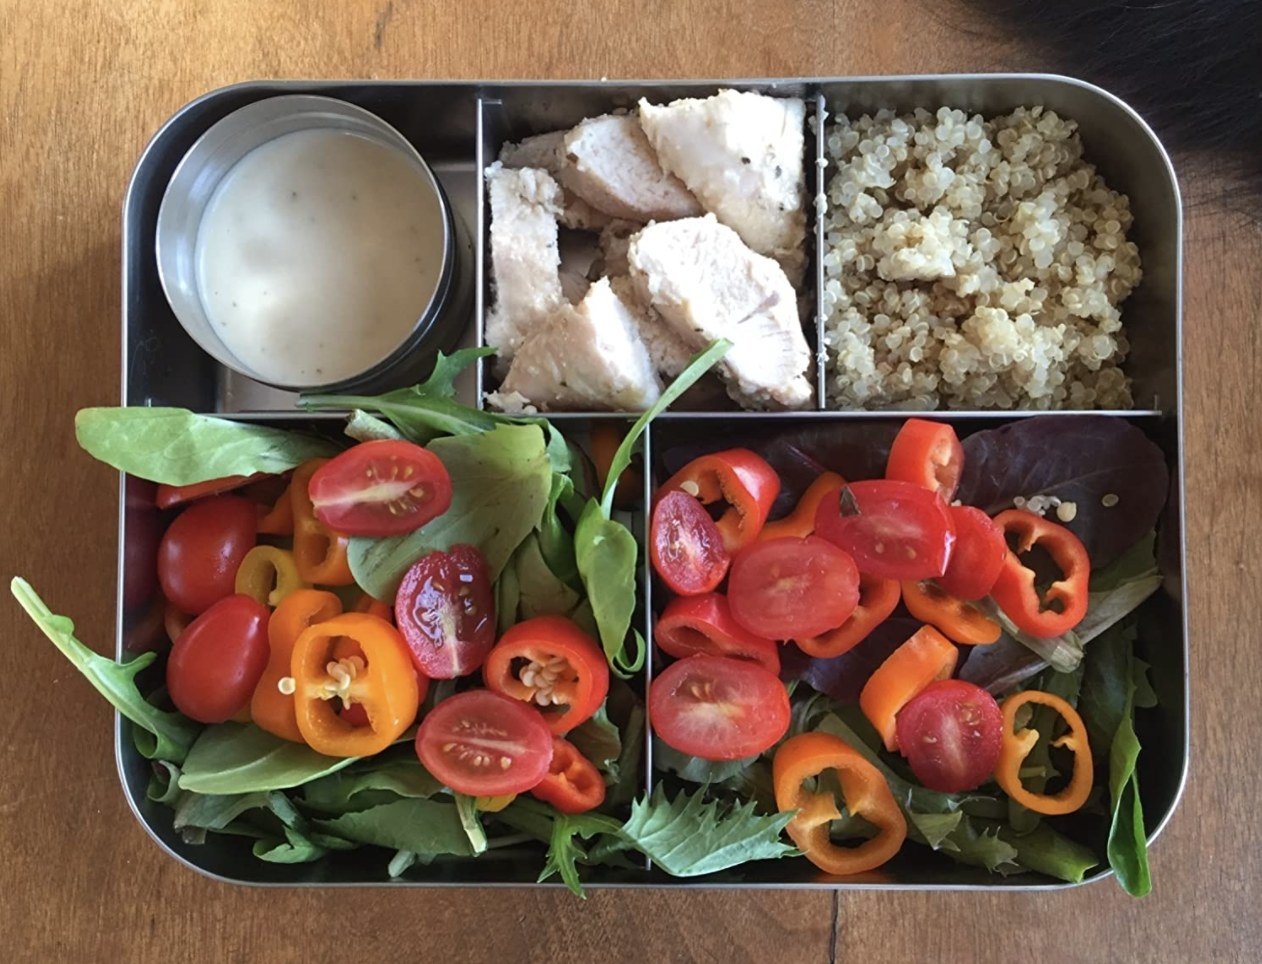 reviewer photo showing their lunch in the stainless steel bento box